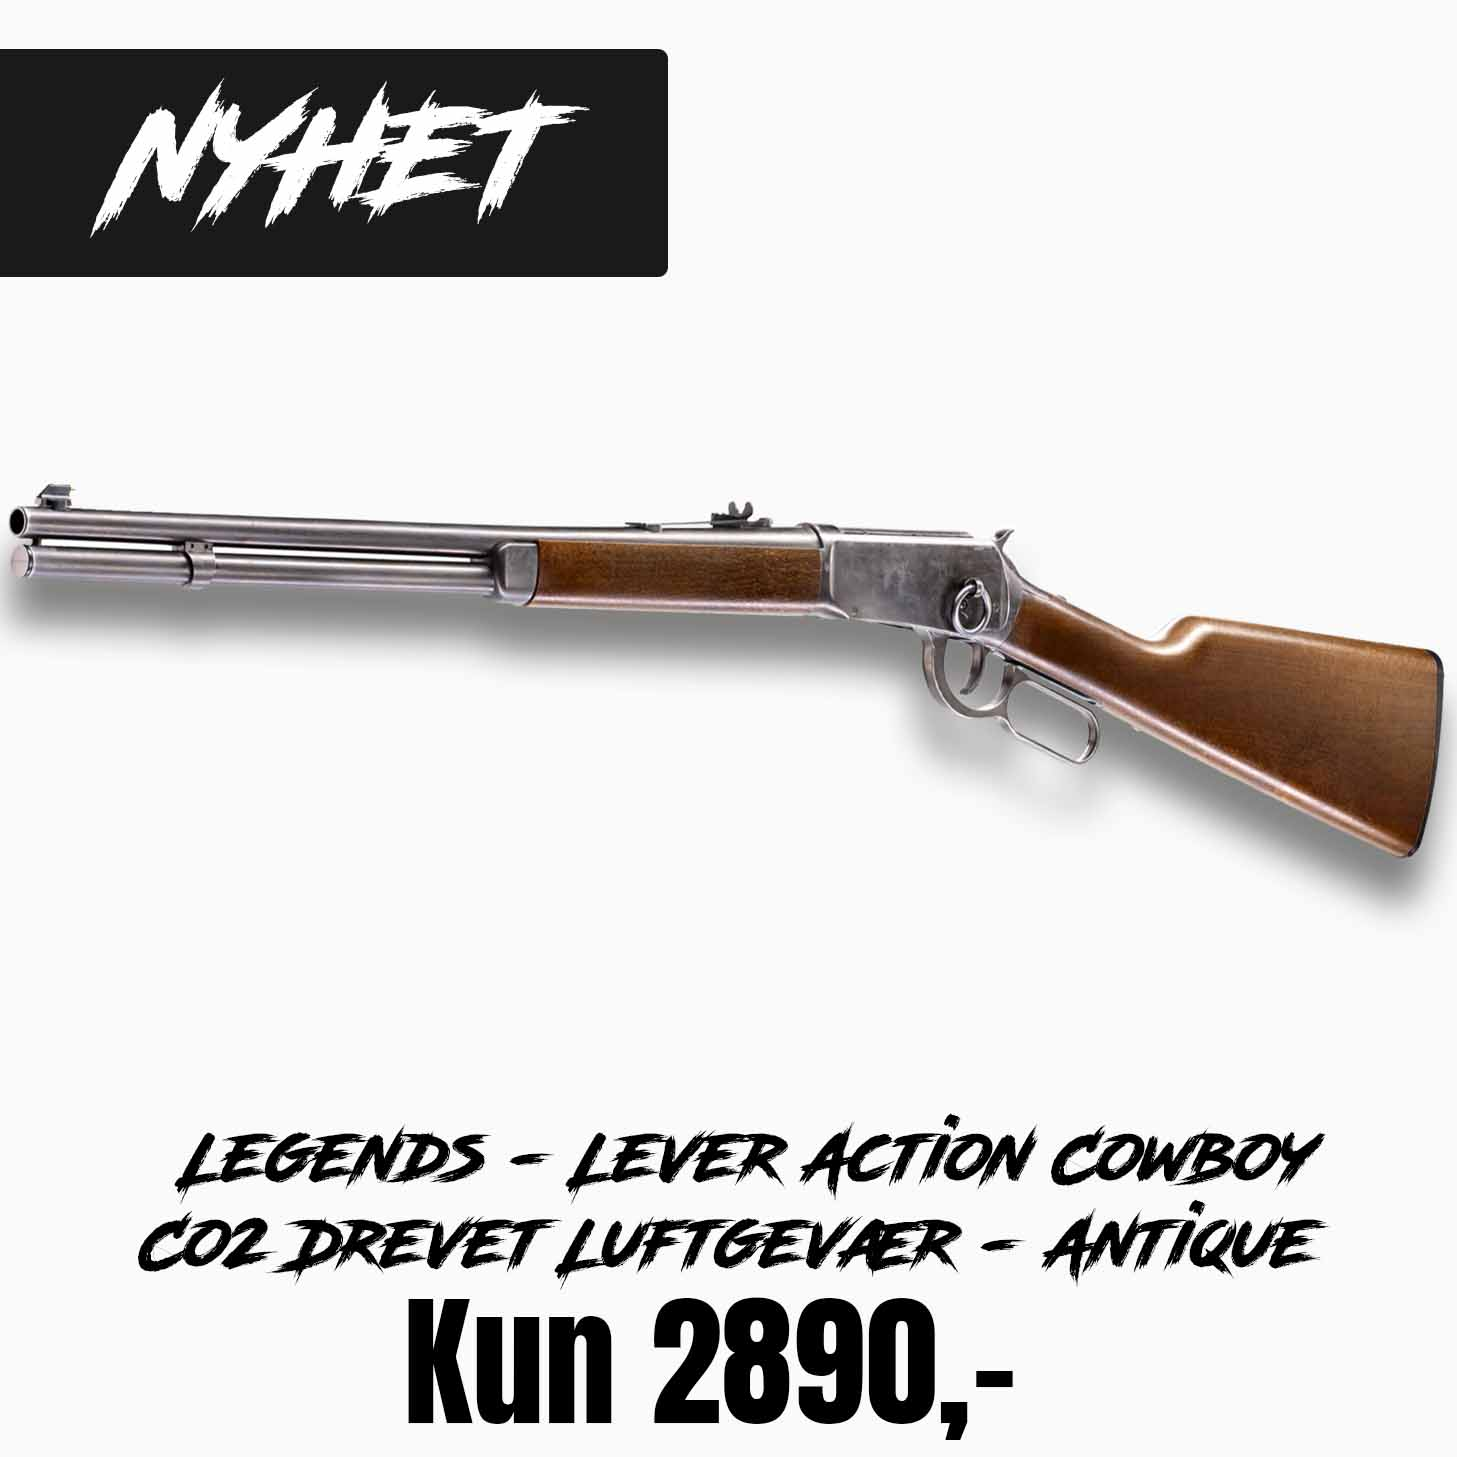 Legends - Lever Action Cowboy Co2 Drevet Luftgevær - Antique